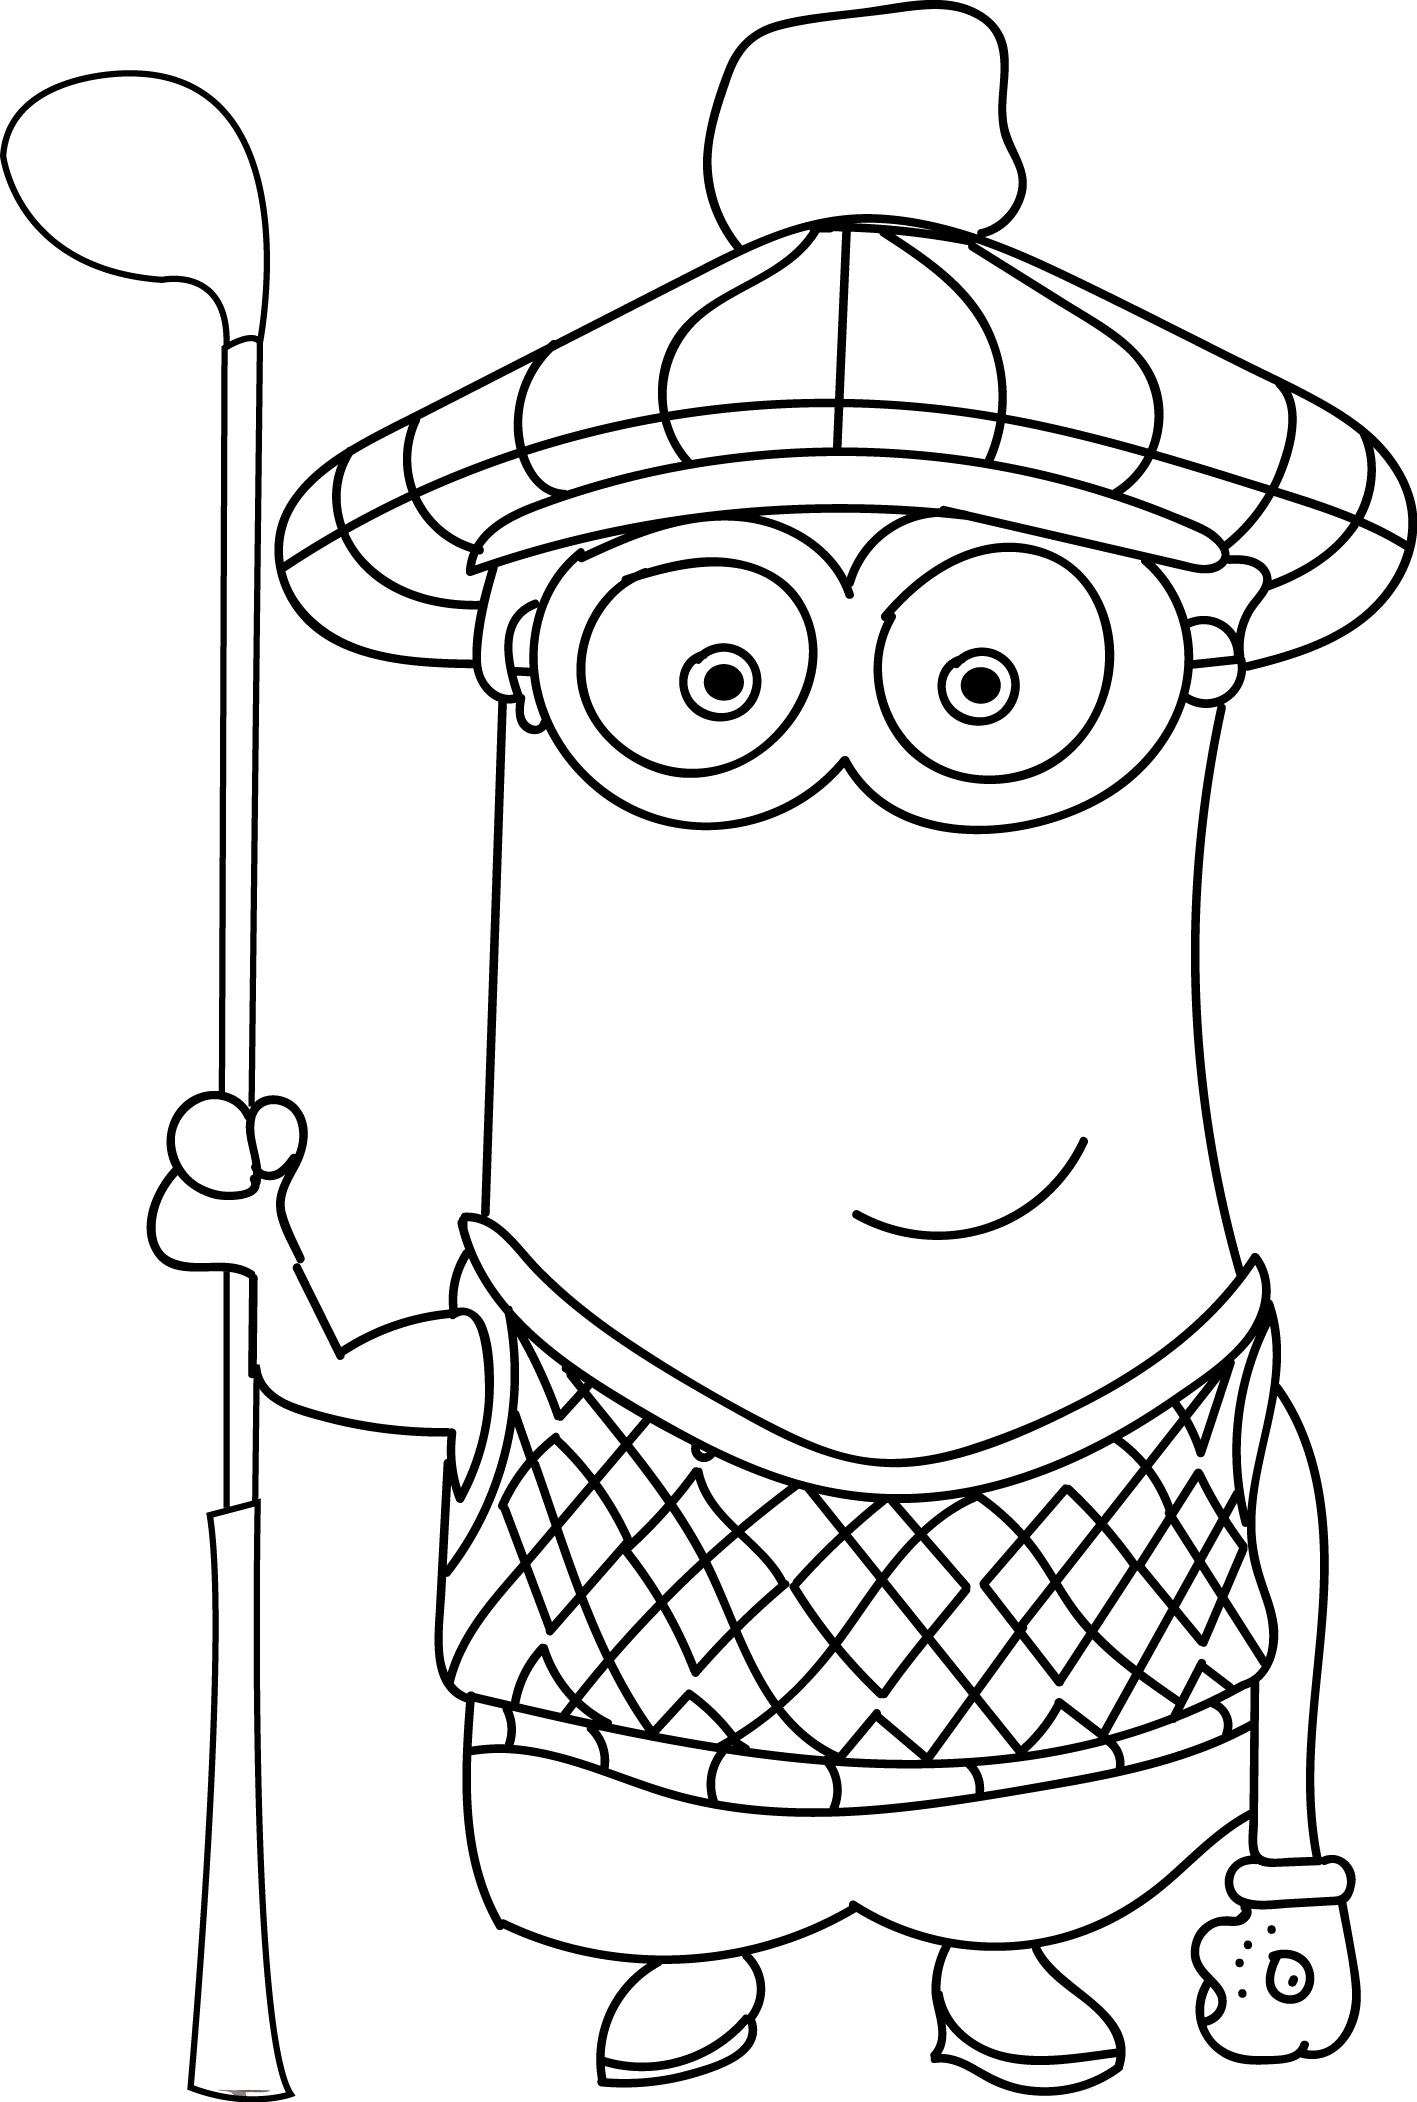 Coloring Pages Golf Coloring Page minion waiting golf coloring page wecoloringpage page